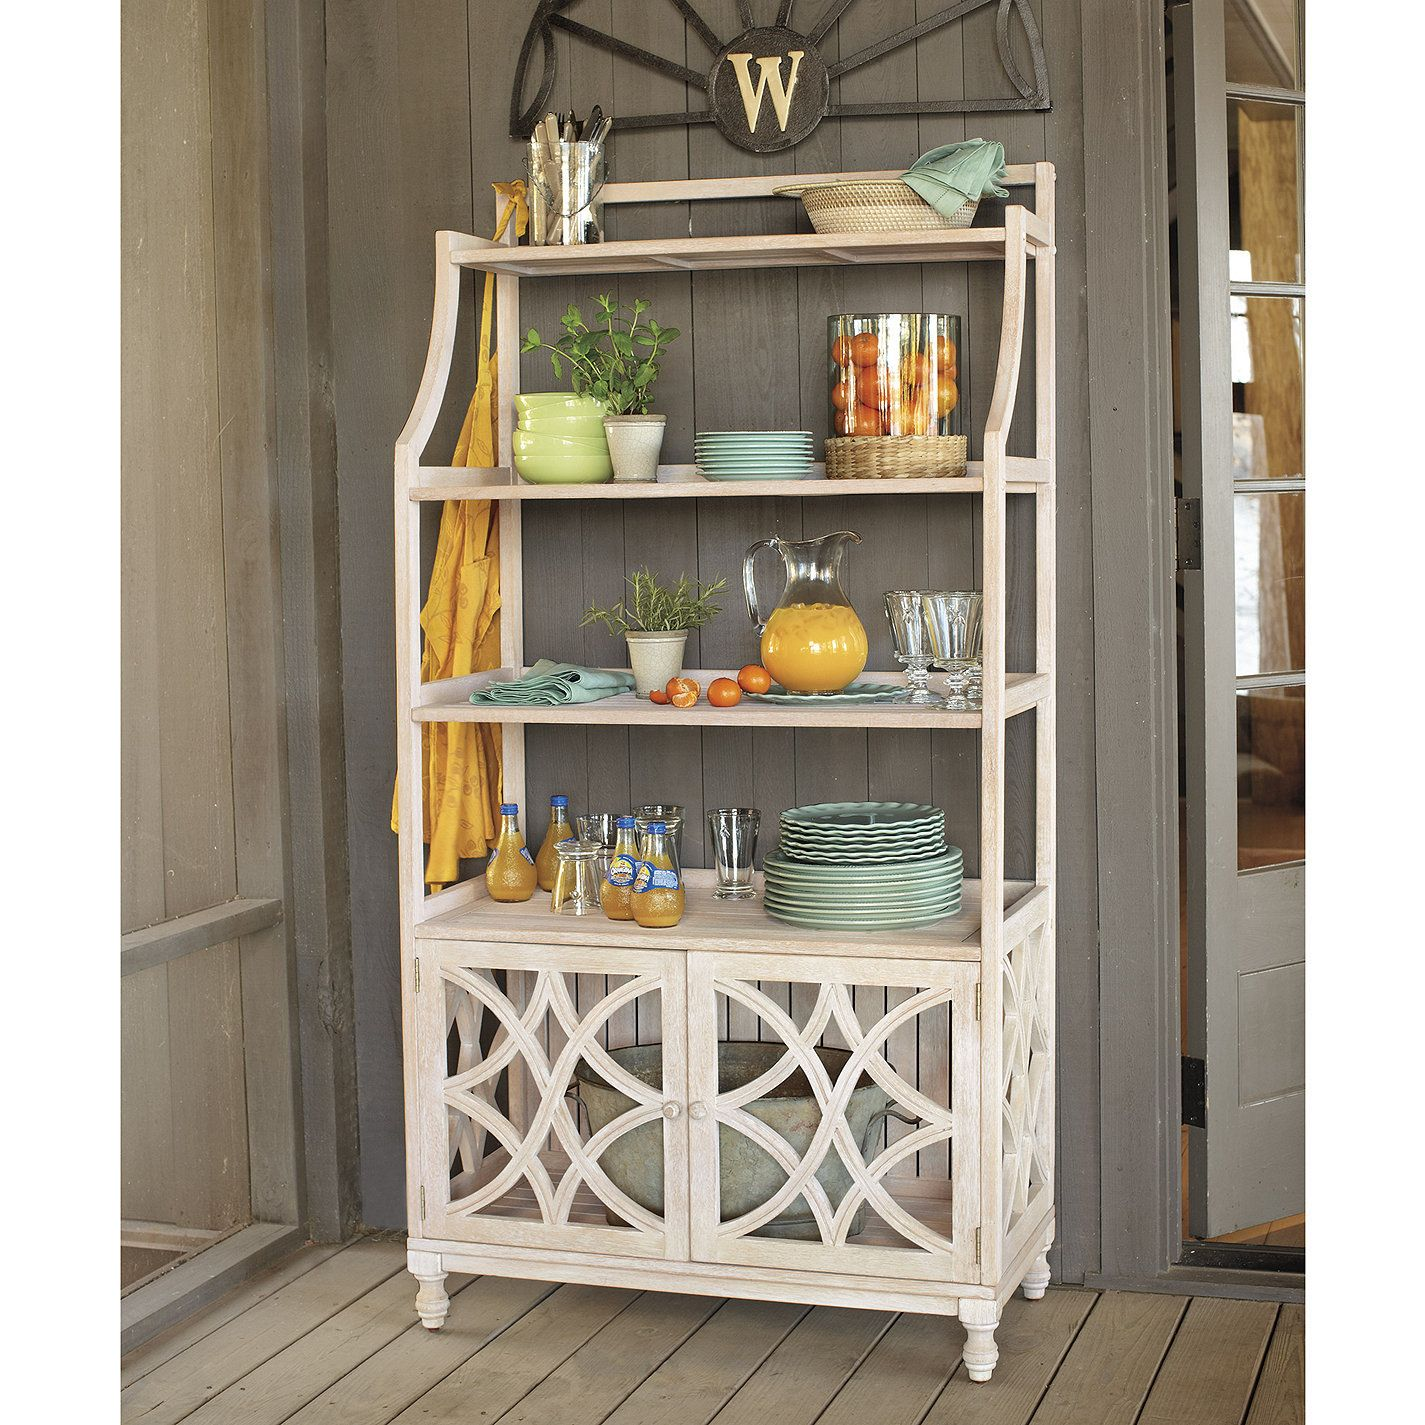 Corner Bakers Rack With Storage Enchanting Ceylon Whitewash Baker's Rack  Bakers Rack Storage And Kitchens Design Inspiration